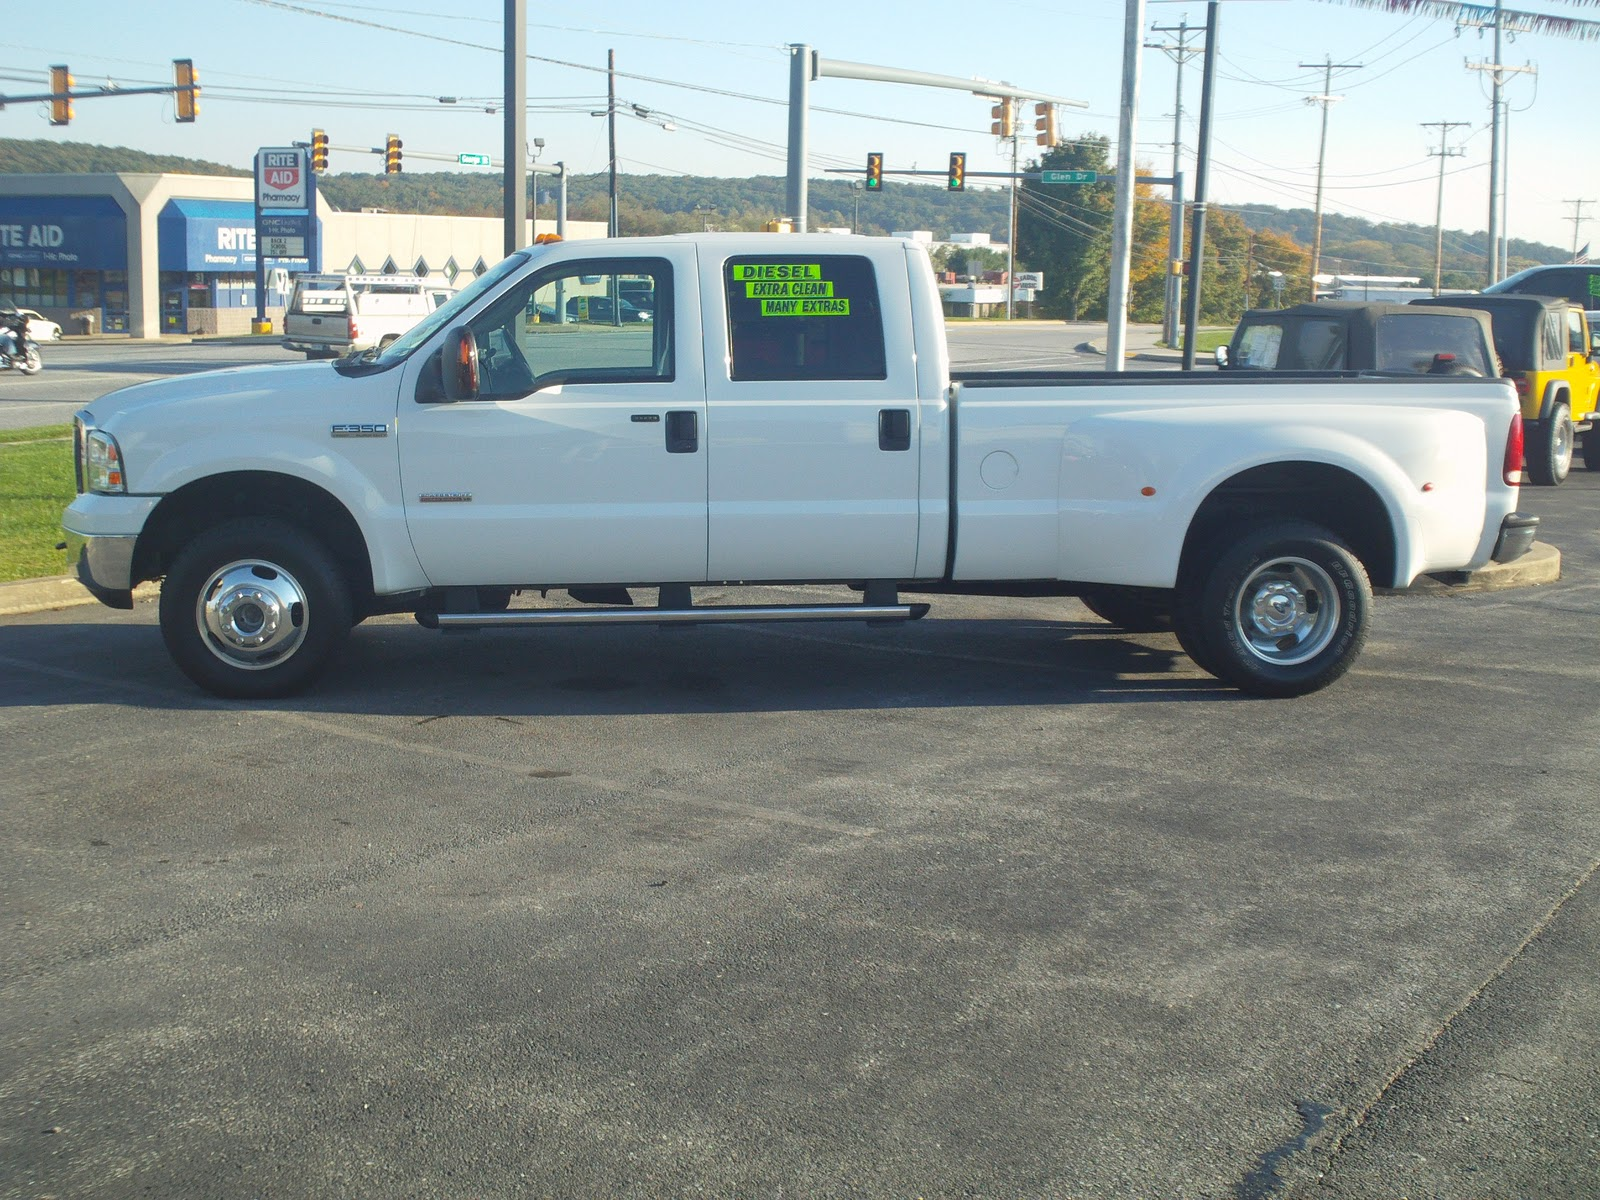 2006 Ford F350 Diesel 4x4 Truck W Dew Eze Hay Bale Pick  2006 F350 Dually Pics | Autos Post